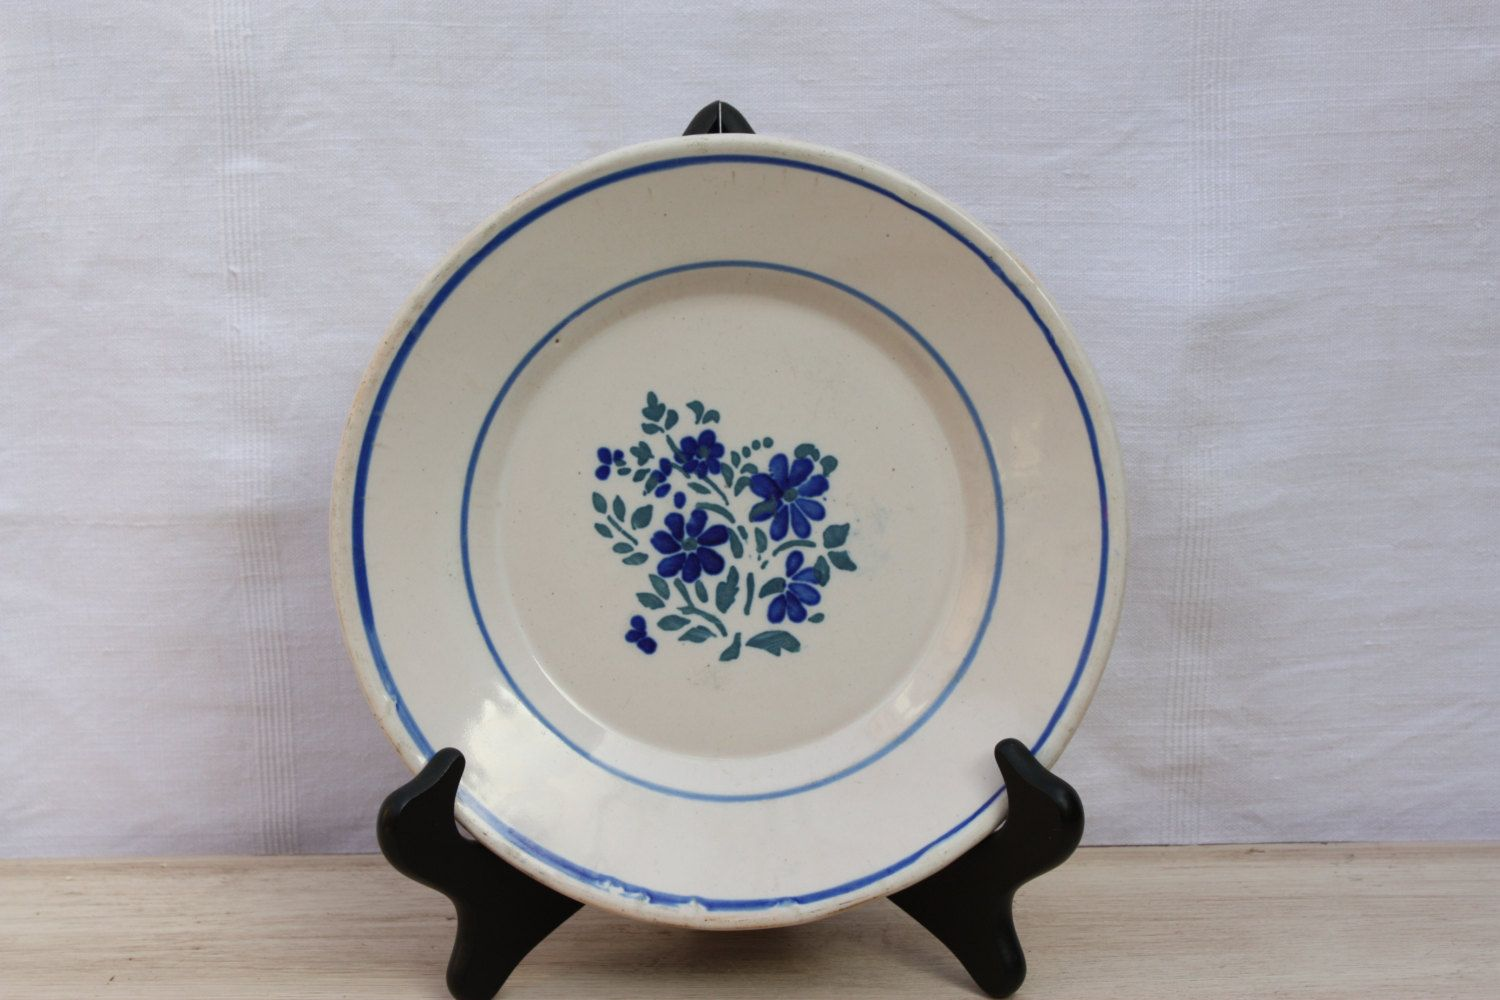 French Faience Pottery Plate Decorative Plate For Wall Hanging Display Hand Painted Hand Made Late 1800 S Traditio Pottery Plates French Pottery Elegant Plates